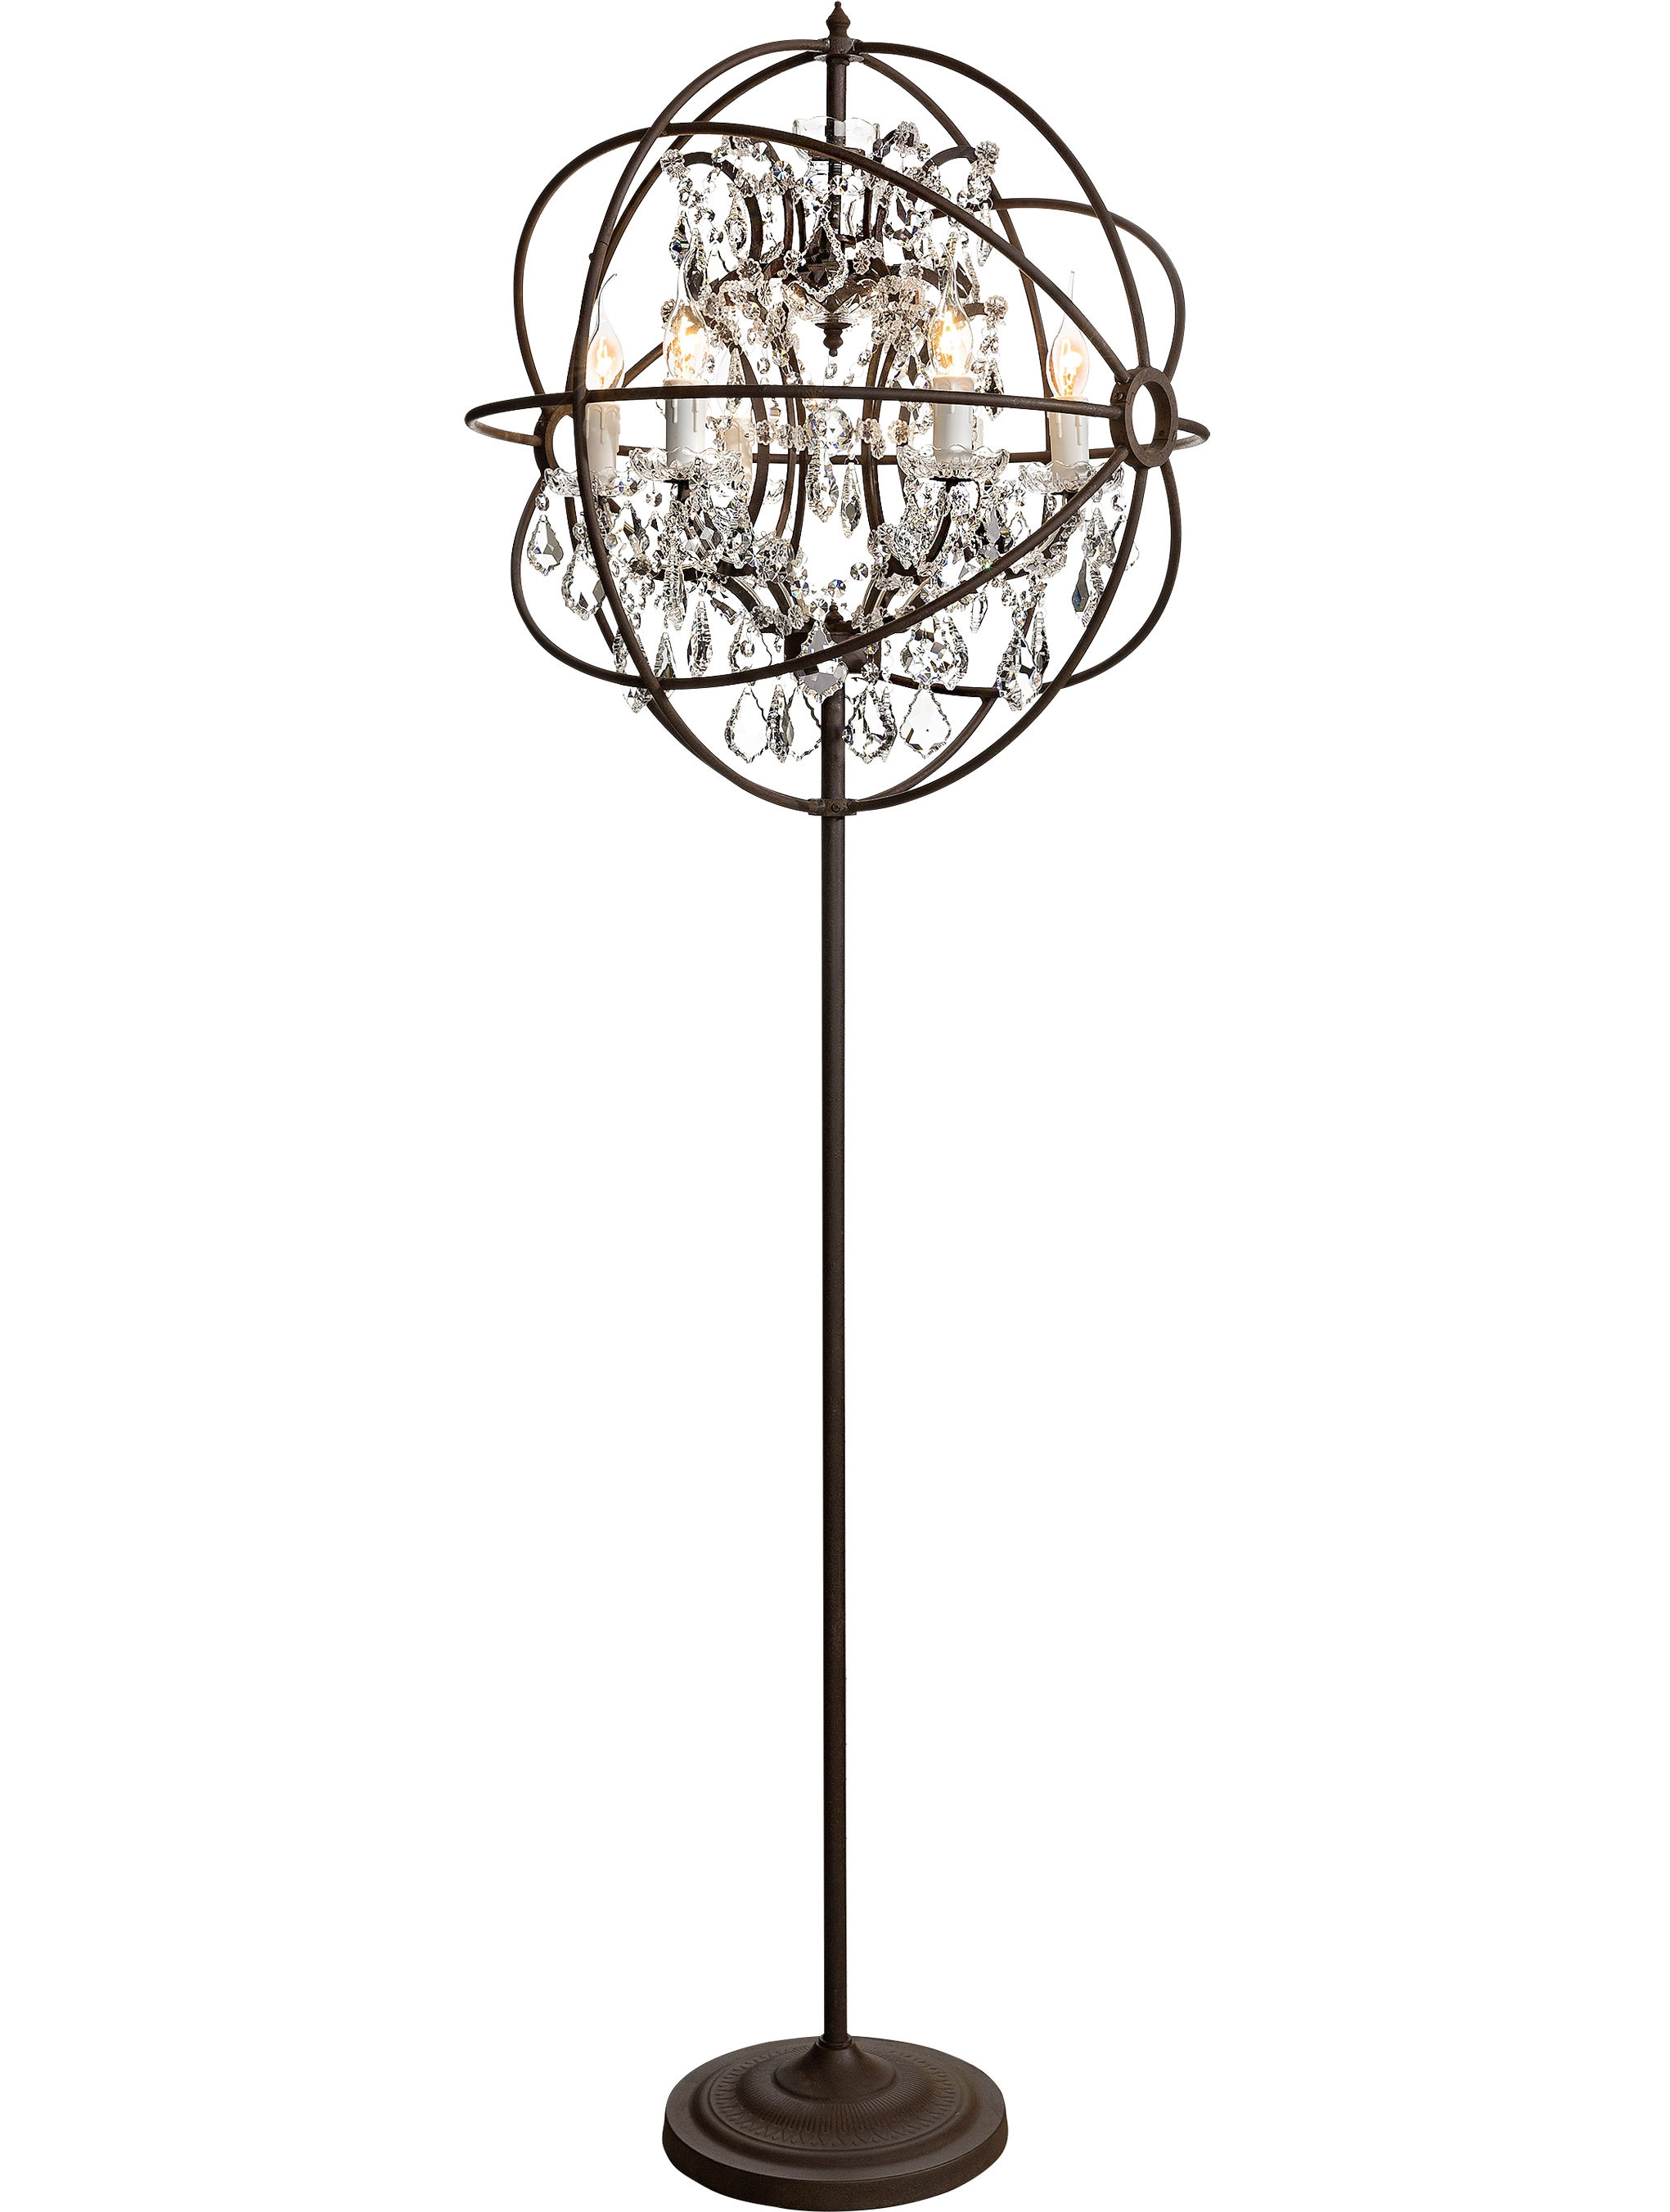 Standing Chandelier Floor Lamp Lighting And Ceiling Fans Throughout Tall Standing Chandelier Lamps (Image 21 of 25)